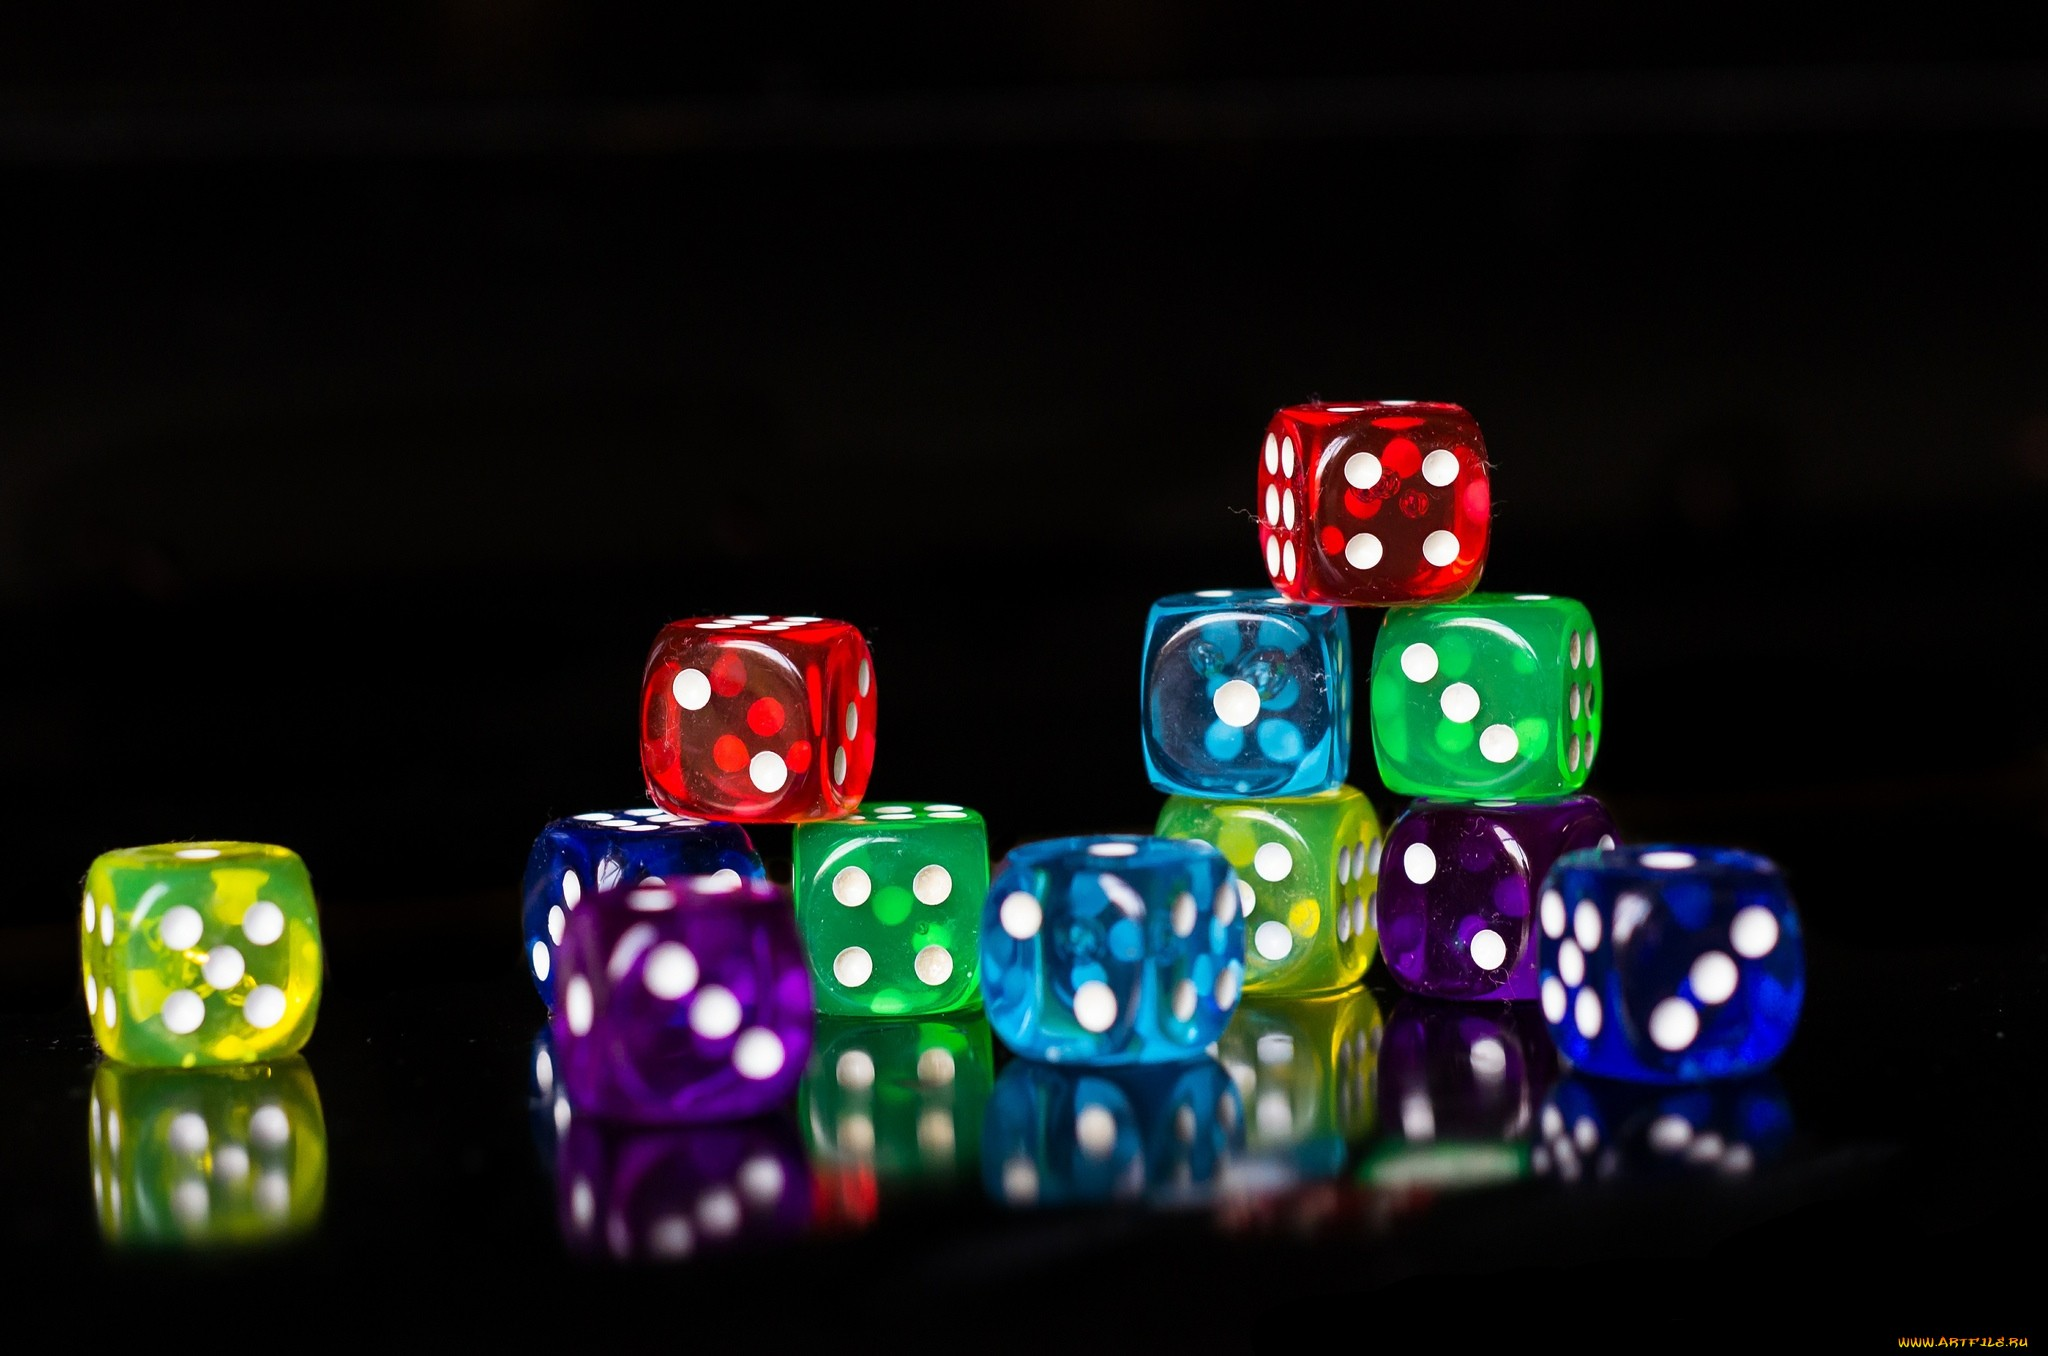 Dice Backgrounds Pictures Images HD Wallpapers Download Free Images Wallpaper [1000image.com]